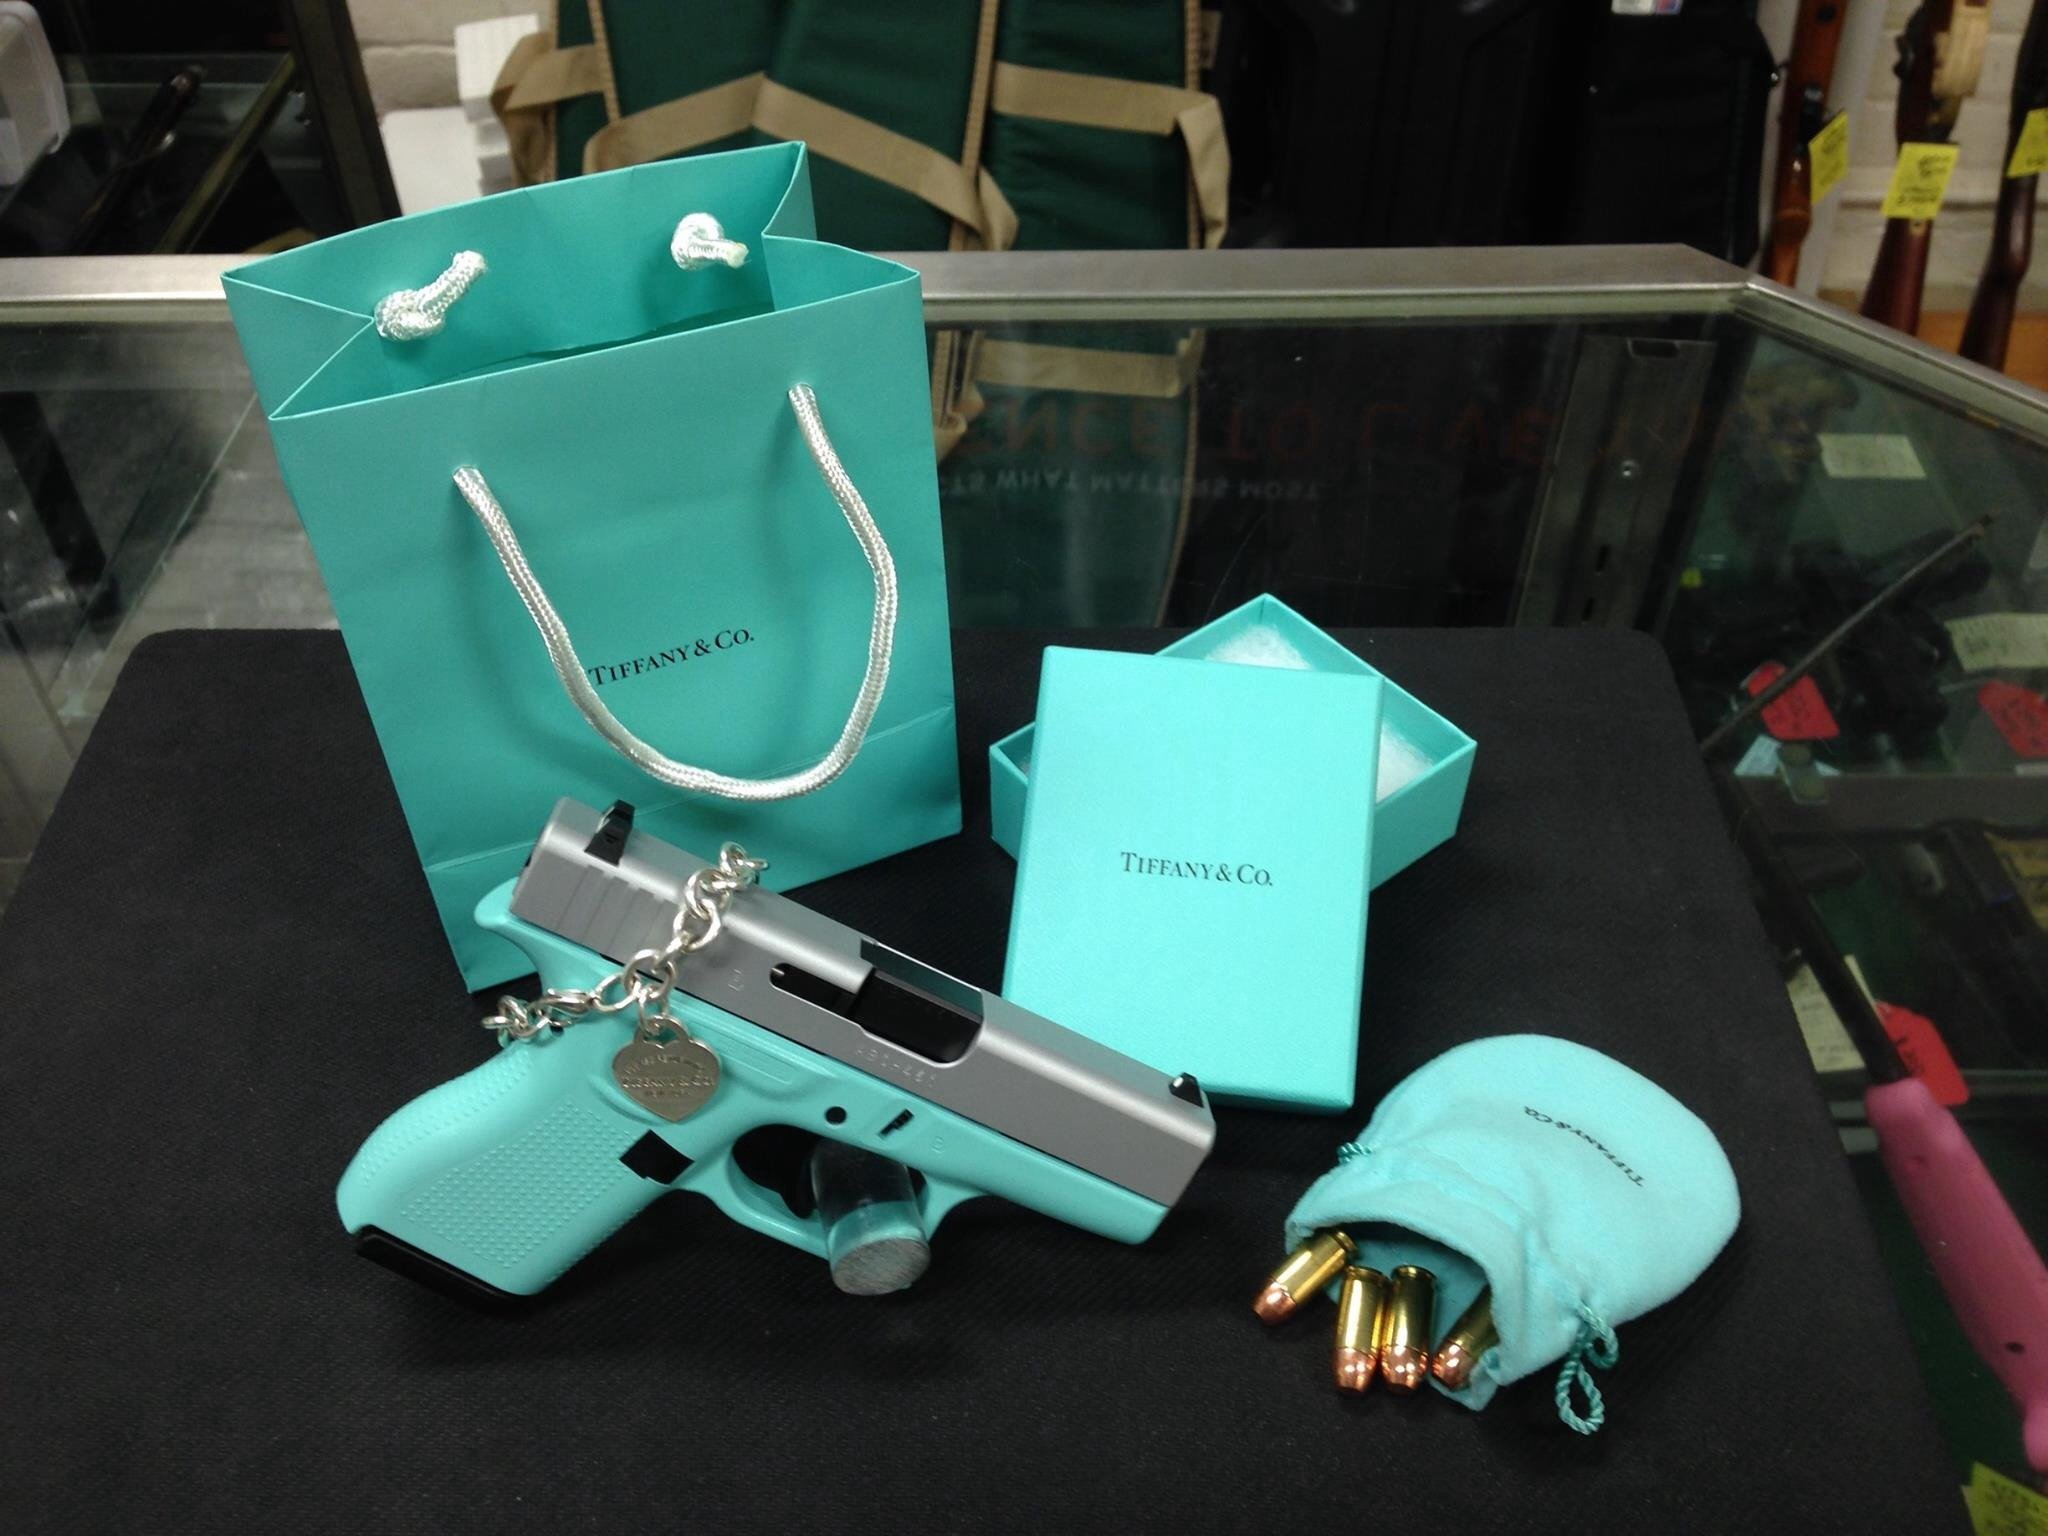 The Tiffany Pistol Is It Really A Thing Alloutdoor